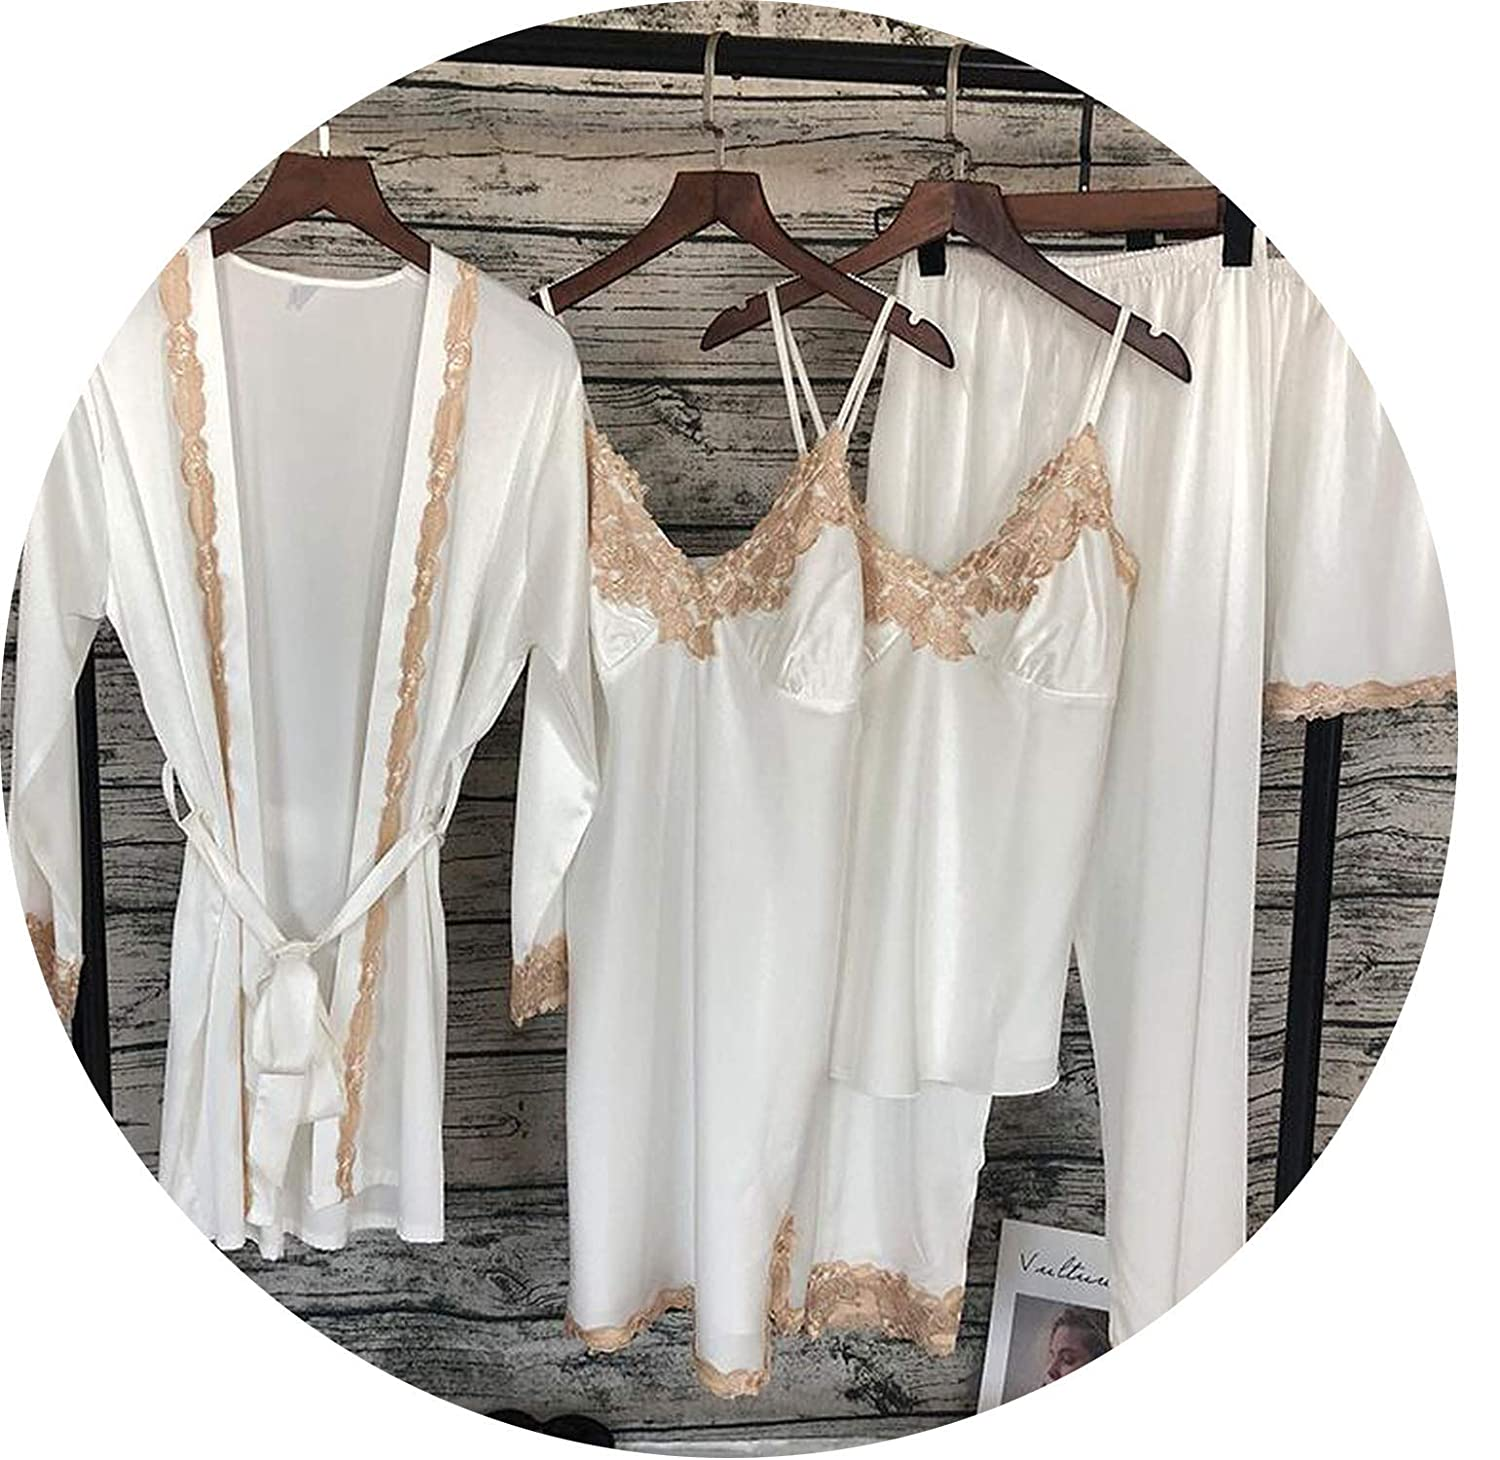 White Lucky Shop Women's Sleepwear 5 Pieces Sexy Lace Sleepwear Pajama Silk Night Pajama Suit